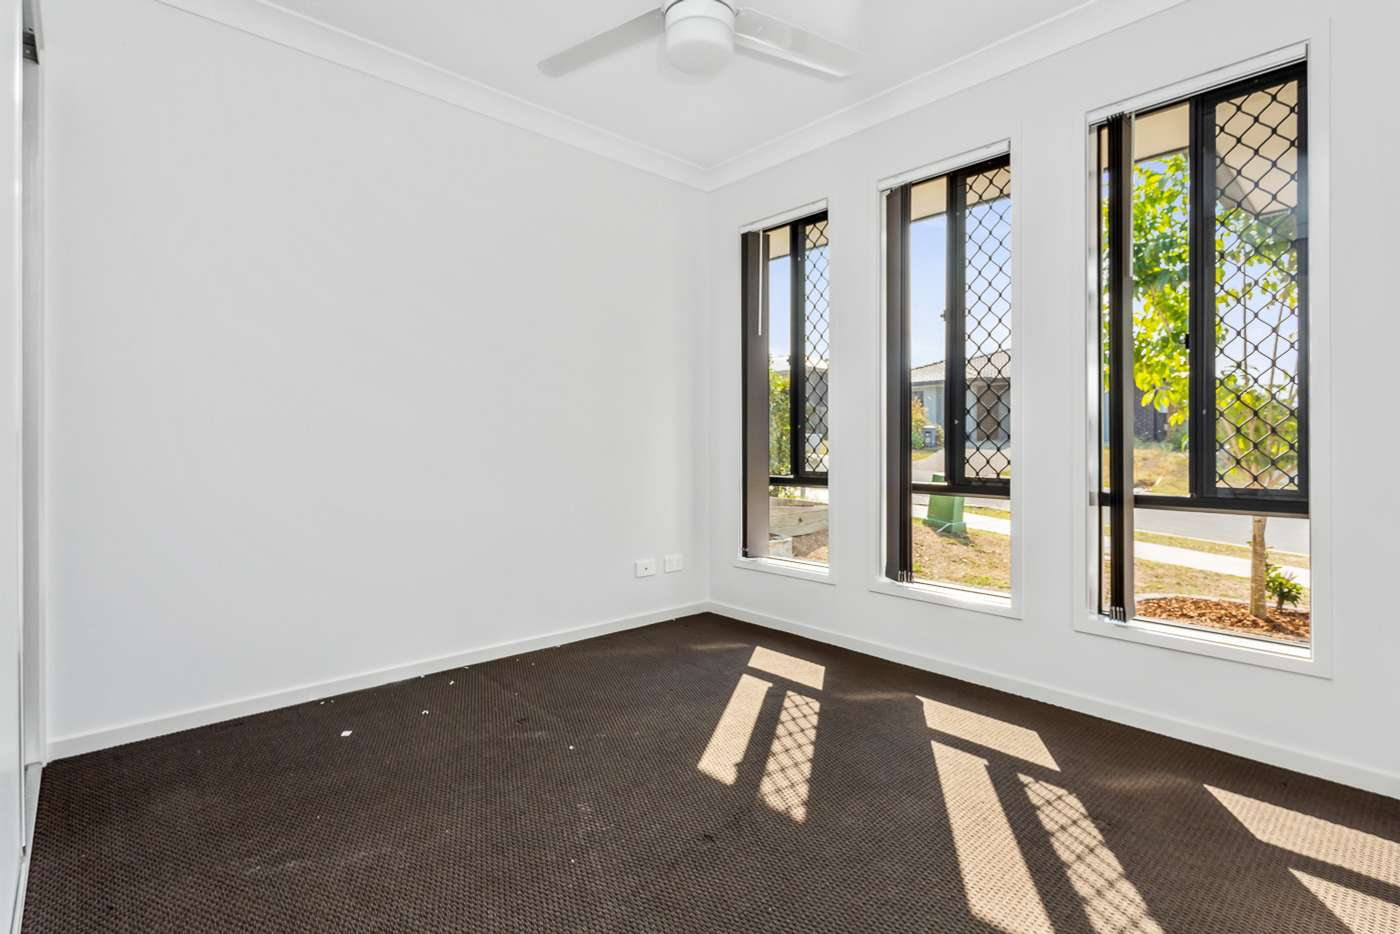 Sixth view of Homely house listing, 10 Chalk St, Yarrabilba QLD 4207